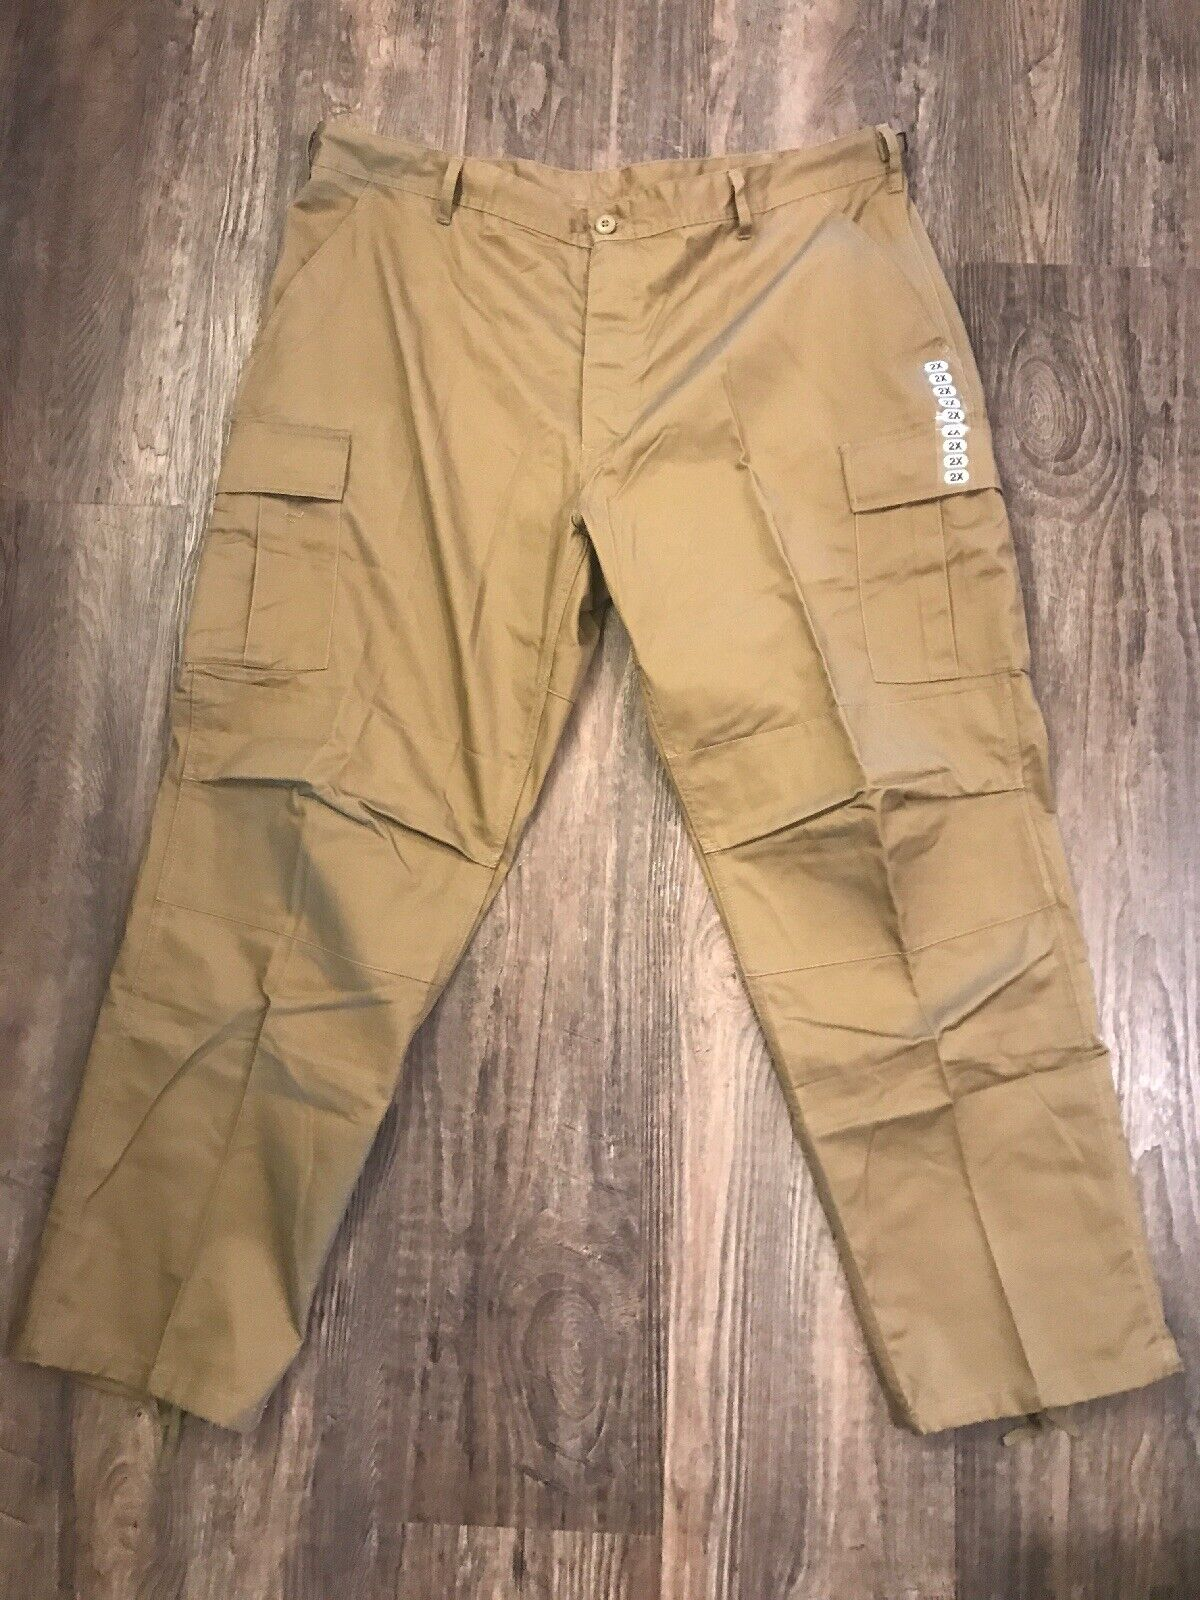 redhco BDU Pants XXL Paratrooper Tactical Cargo Adjustable Ranger Outdoor Coyote